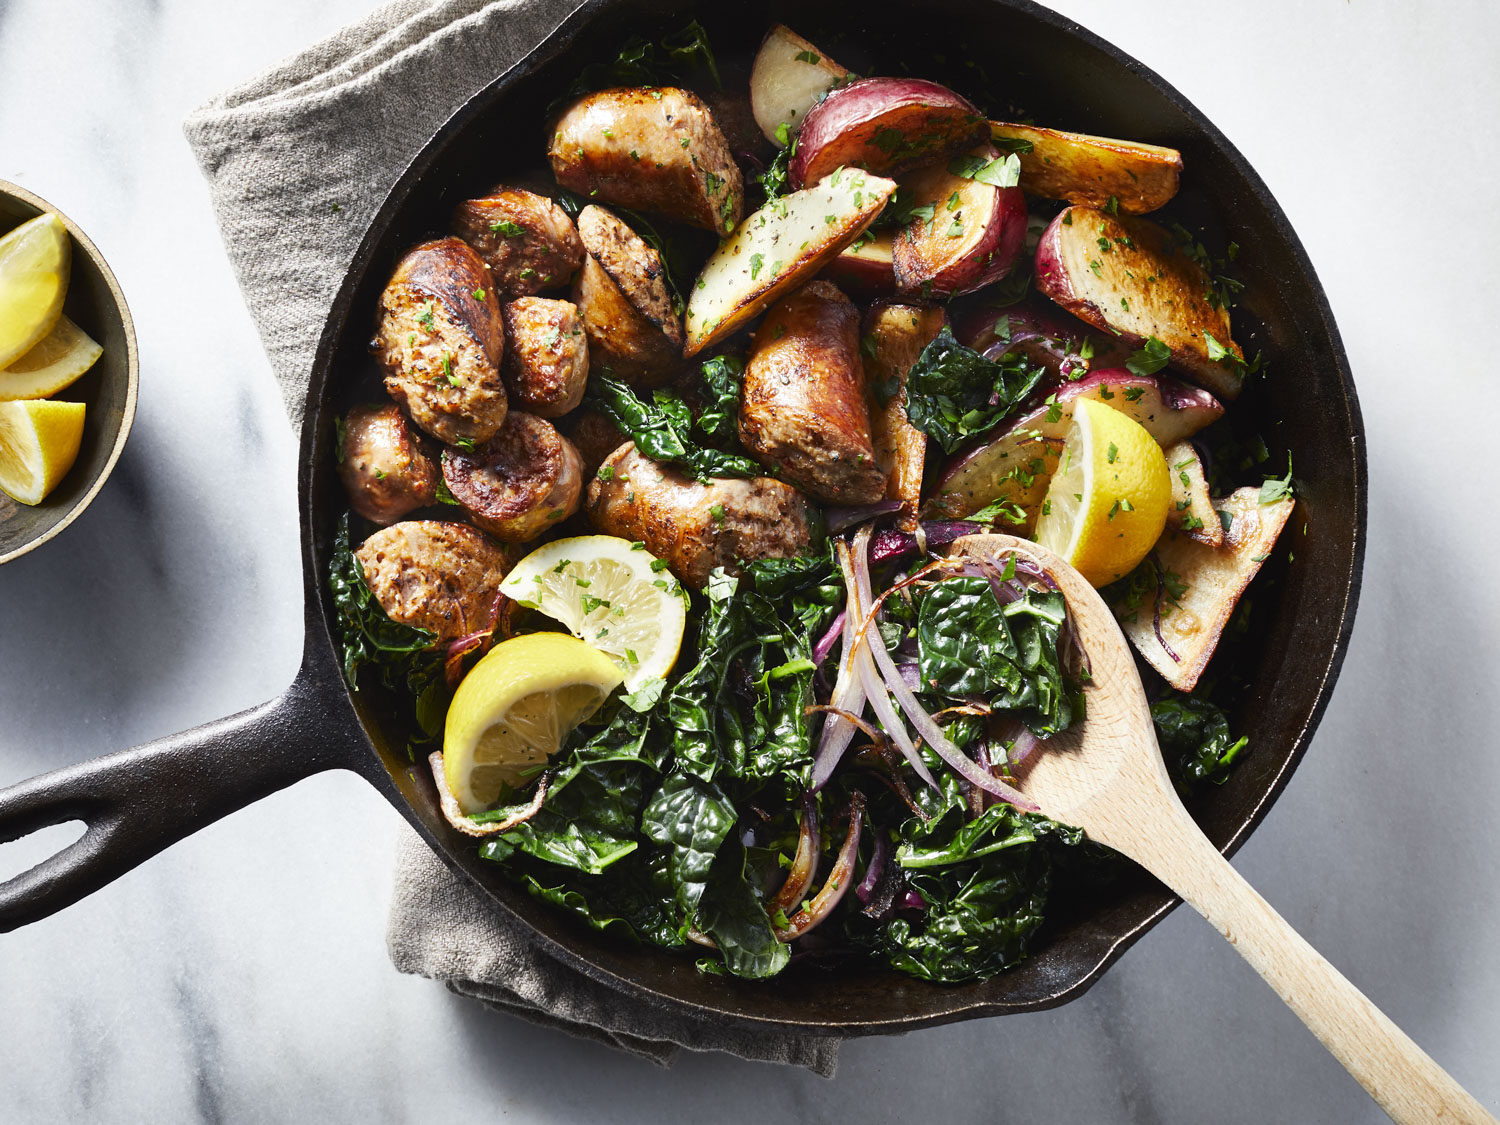 Sausage, Kale, and Potato Skillet Supper